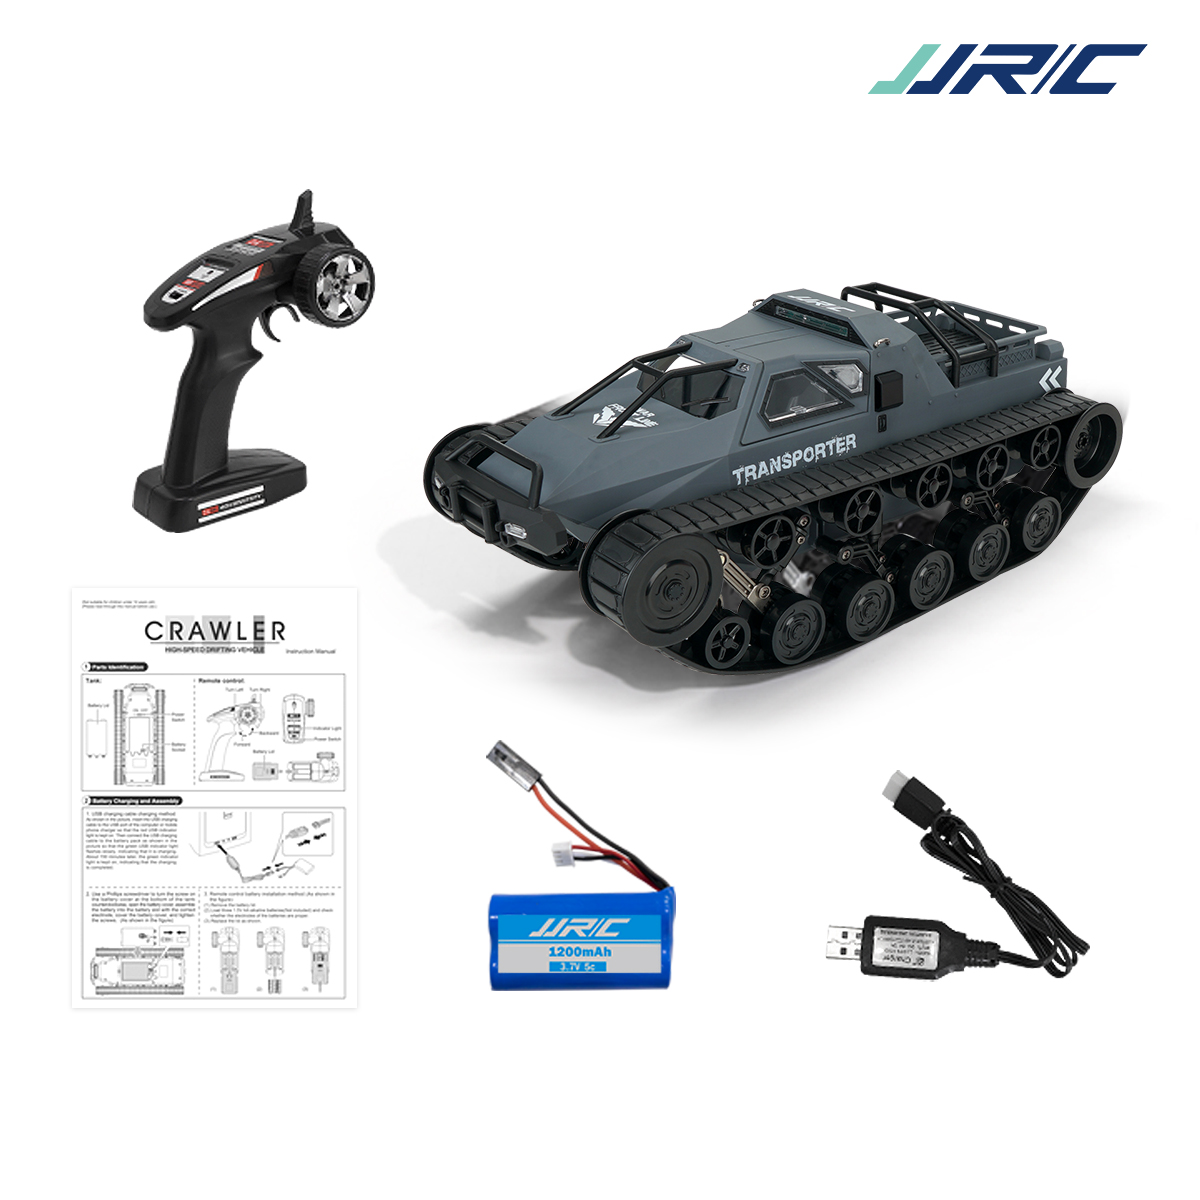 SG 1203 1/12 2.4G Drift RC Tank Car High Speed Full Proportional Control Vehicle Models gray